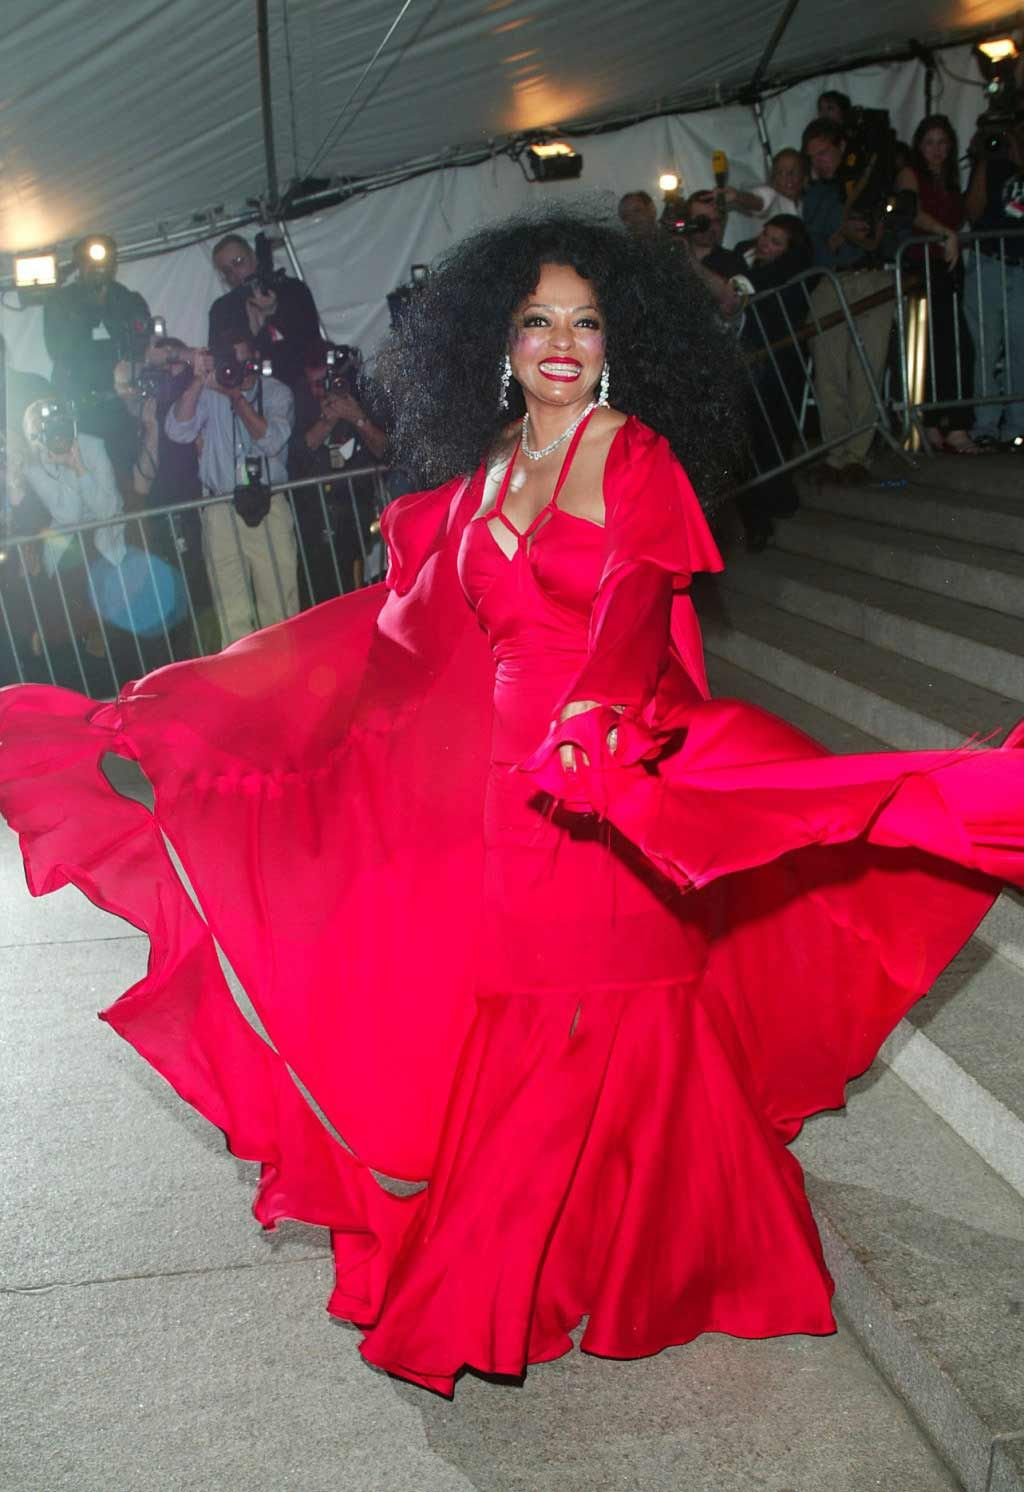 Diana Ross at The Met Gala. La Ross remains divine! | The Boss ...